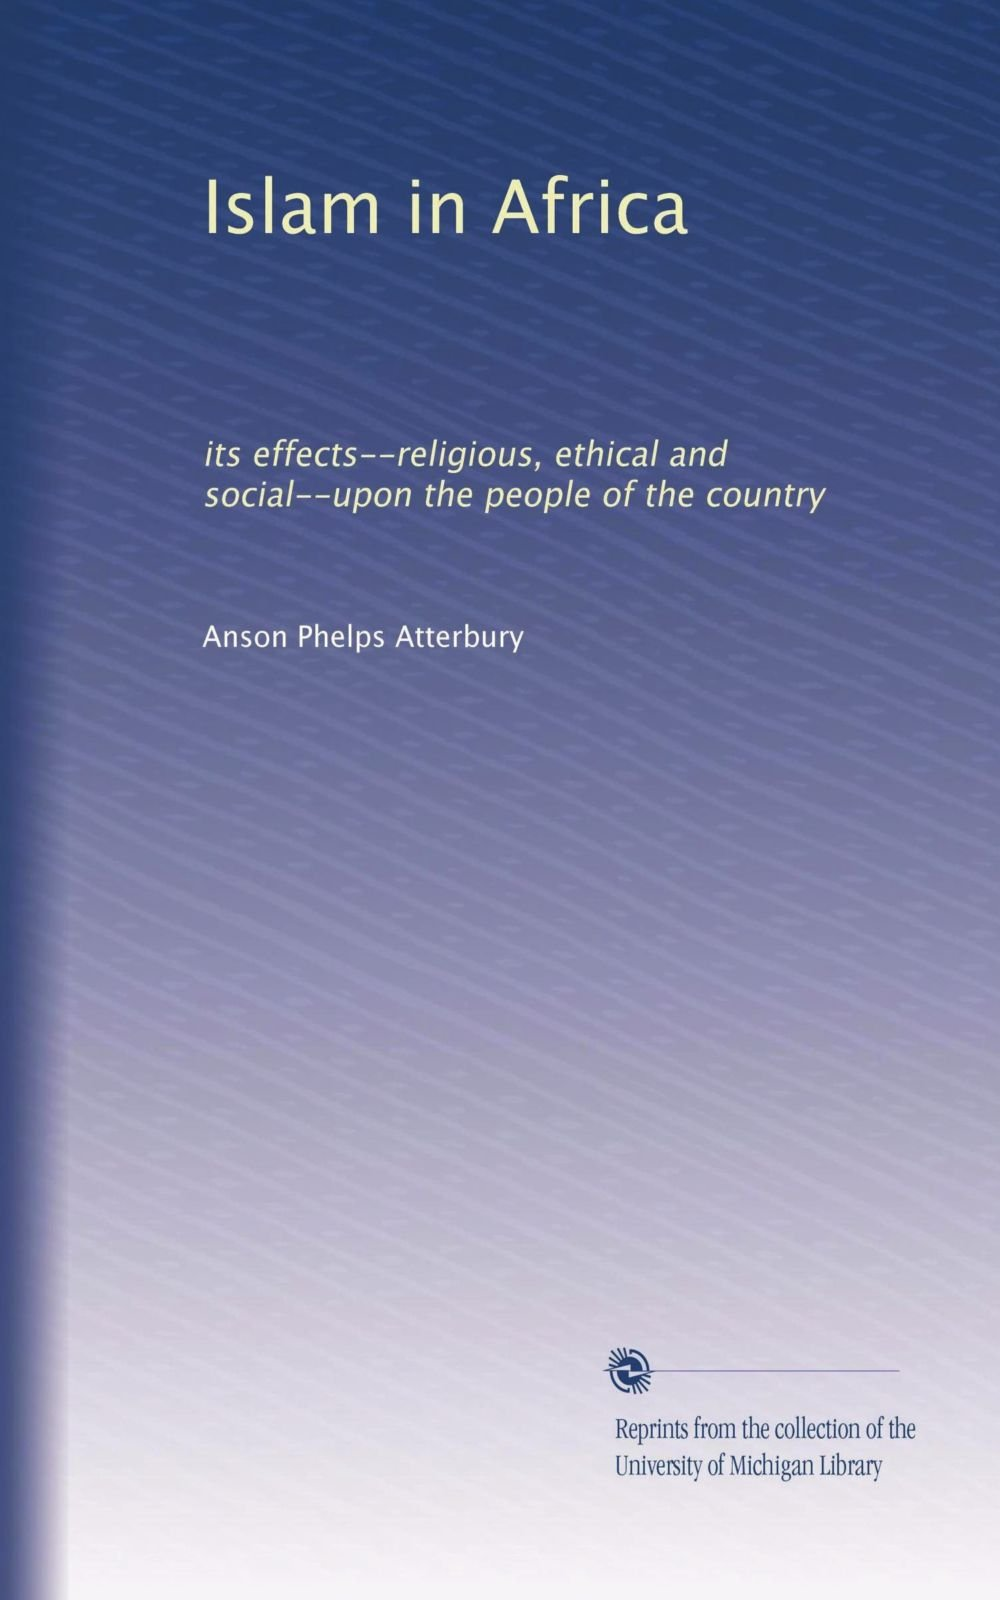 Download Islam in Africa: its effects--religious, ethical and social--upon the people of the country pdf